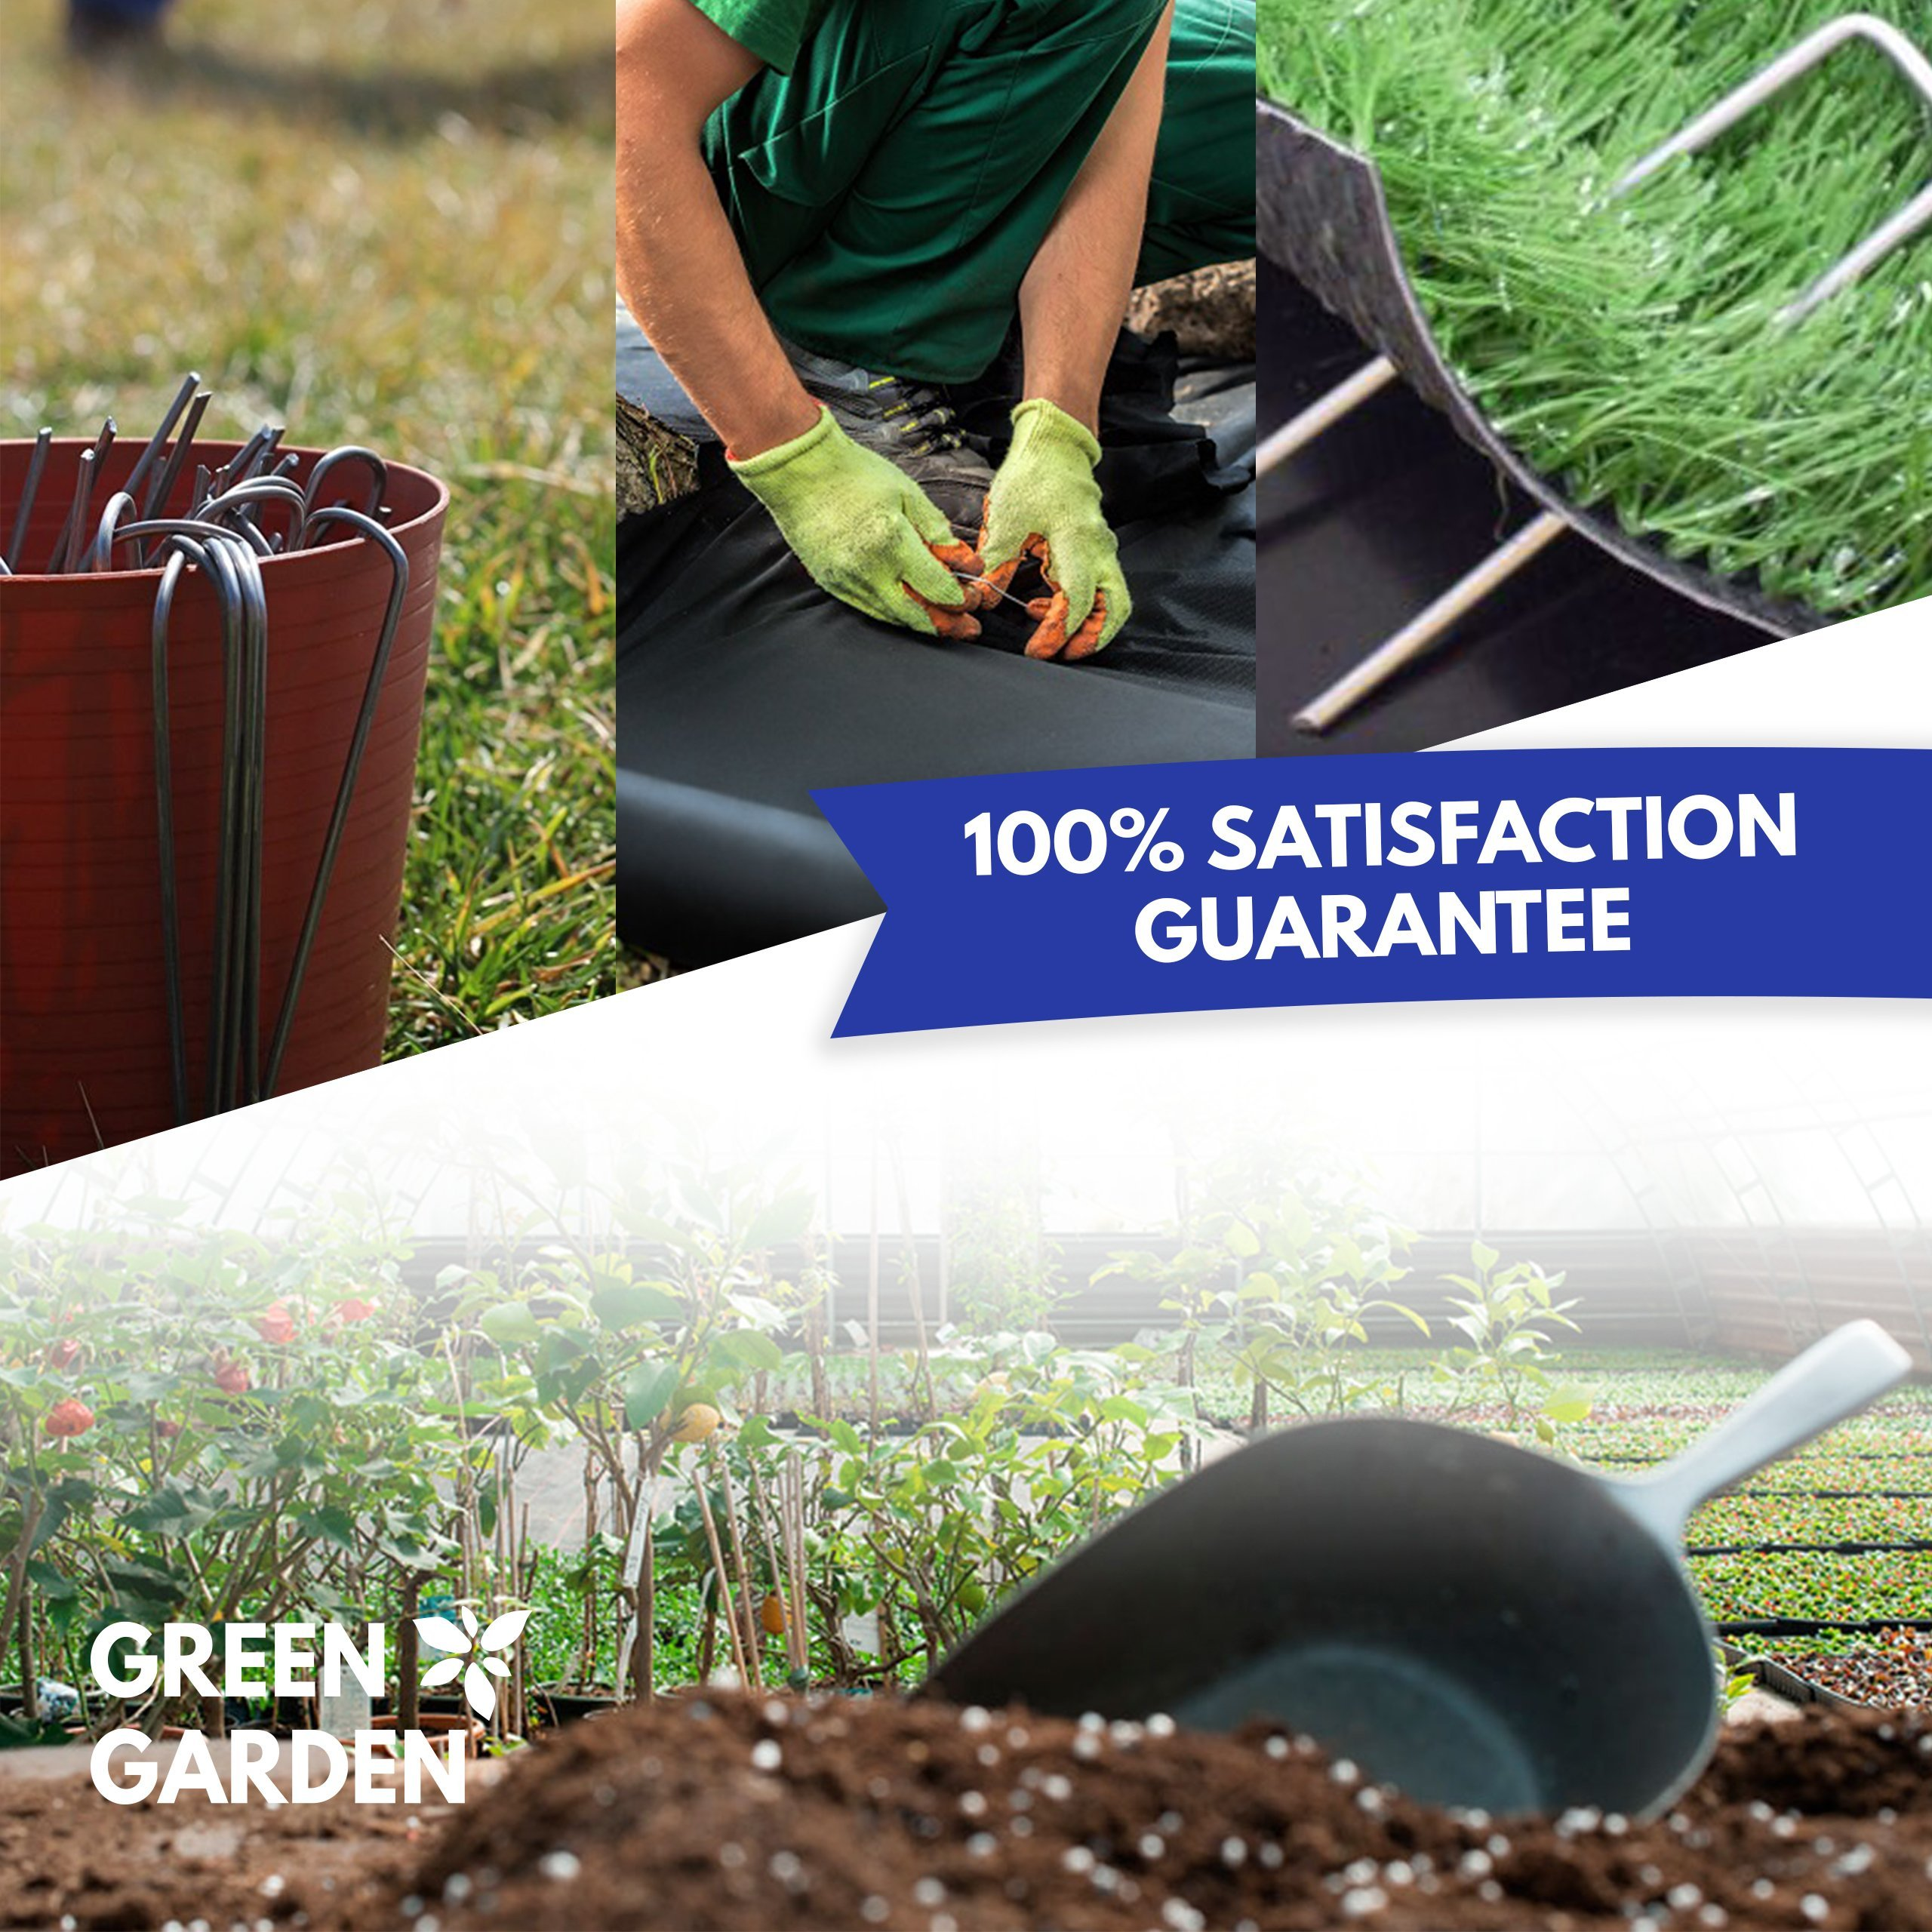 GreenGarden 6 Inch Garden Landscape Staples Stakes Pins SOD | 200 Pack | Galvanized Steel | For Weed Barrier Fabric, Ground Cover, Soaker Hose, Lawn Drippers, Drip Irrigation Tubing etc. | by